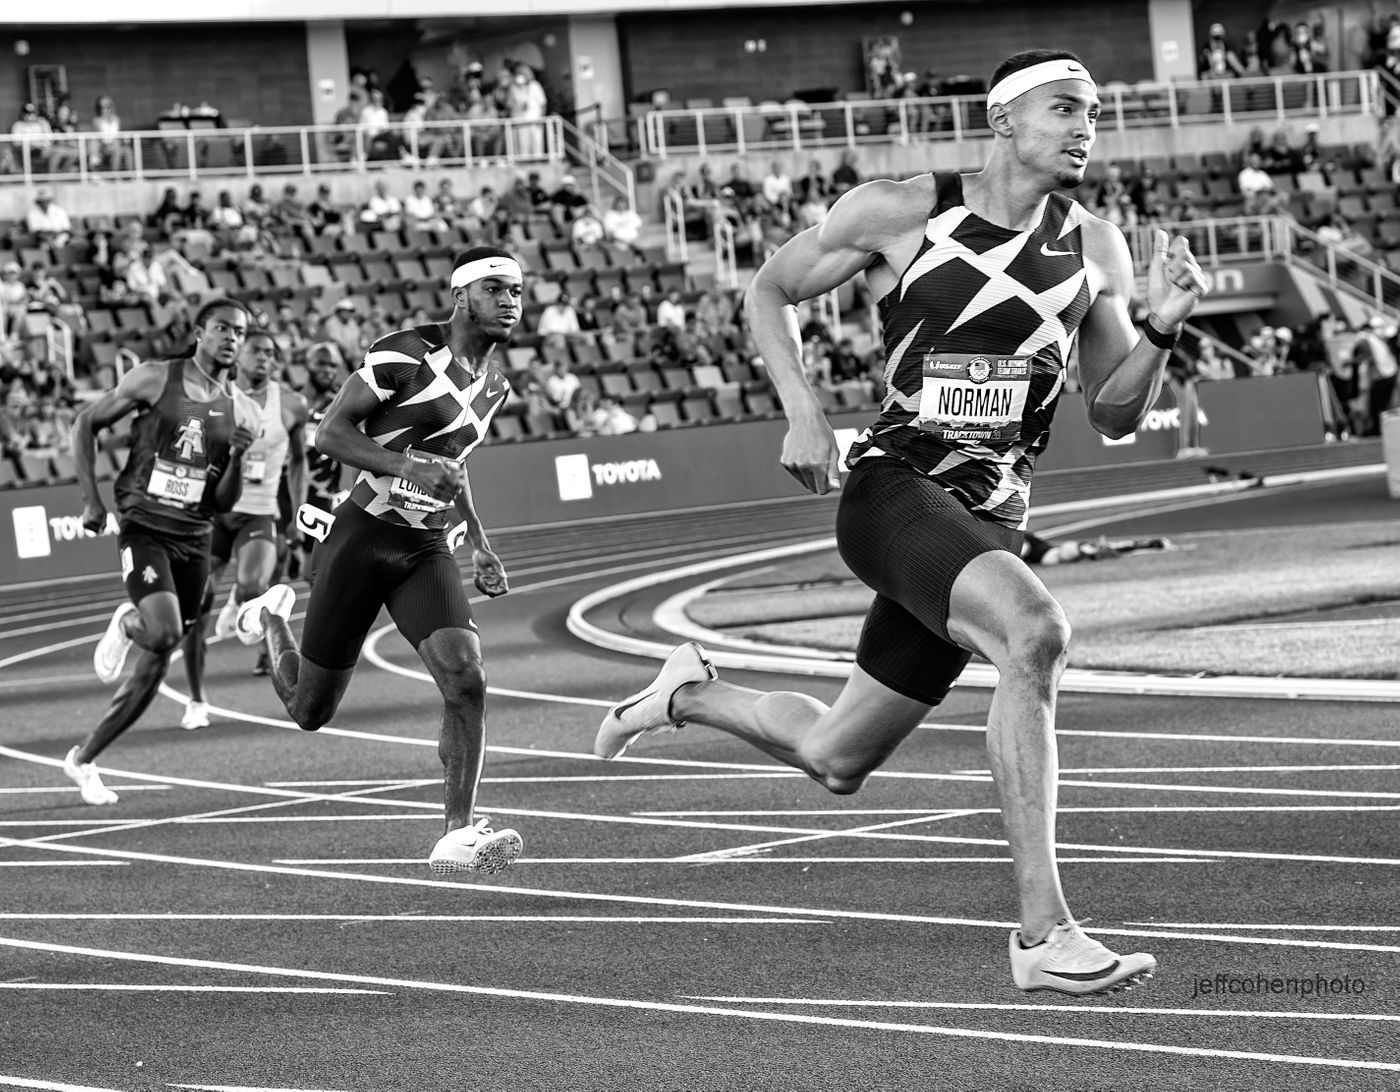 norman-400m-2021-US-Oly-Trials-day-2-2593-jeff-cohen-photo--web.jpg